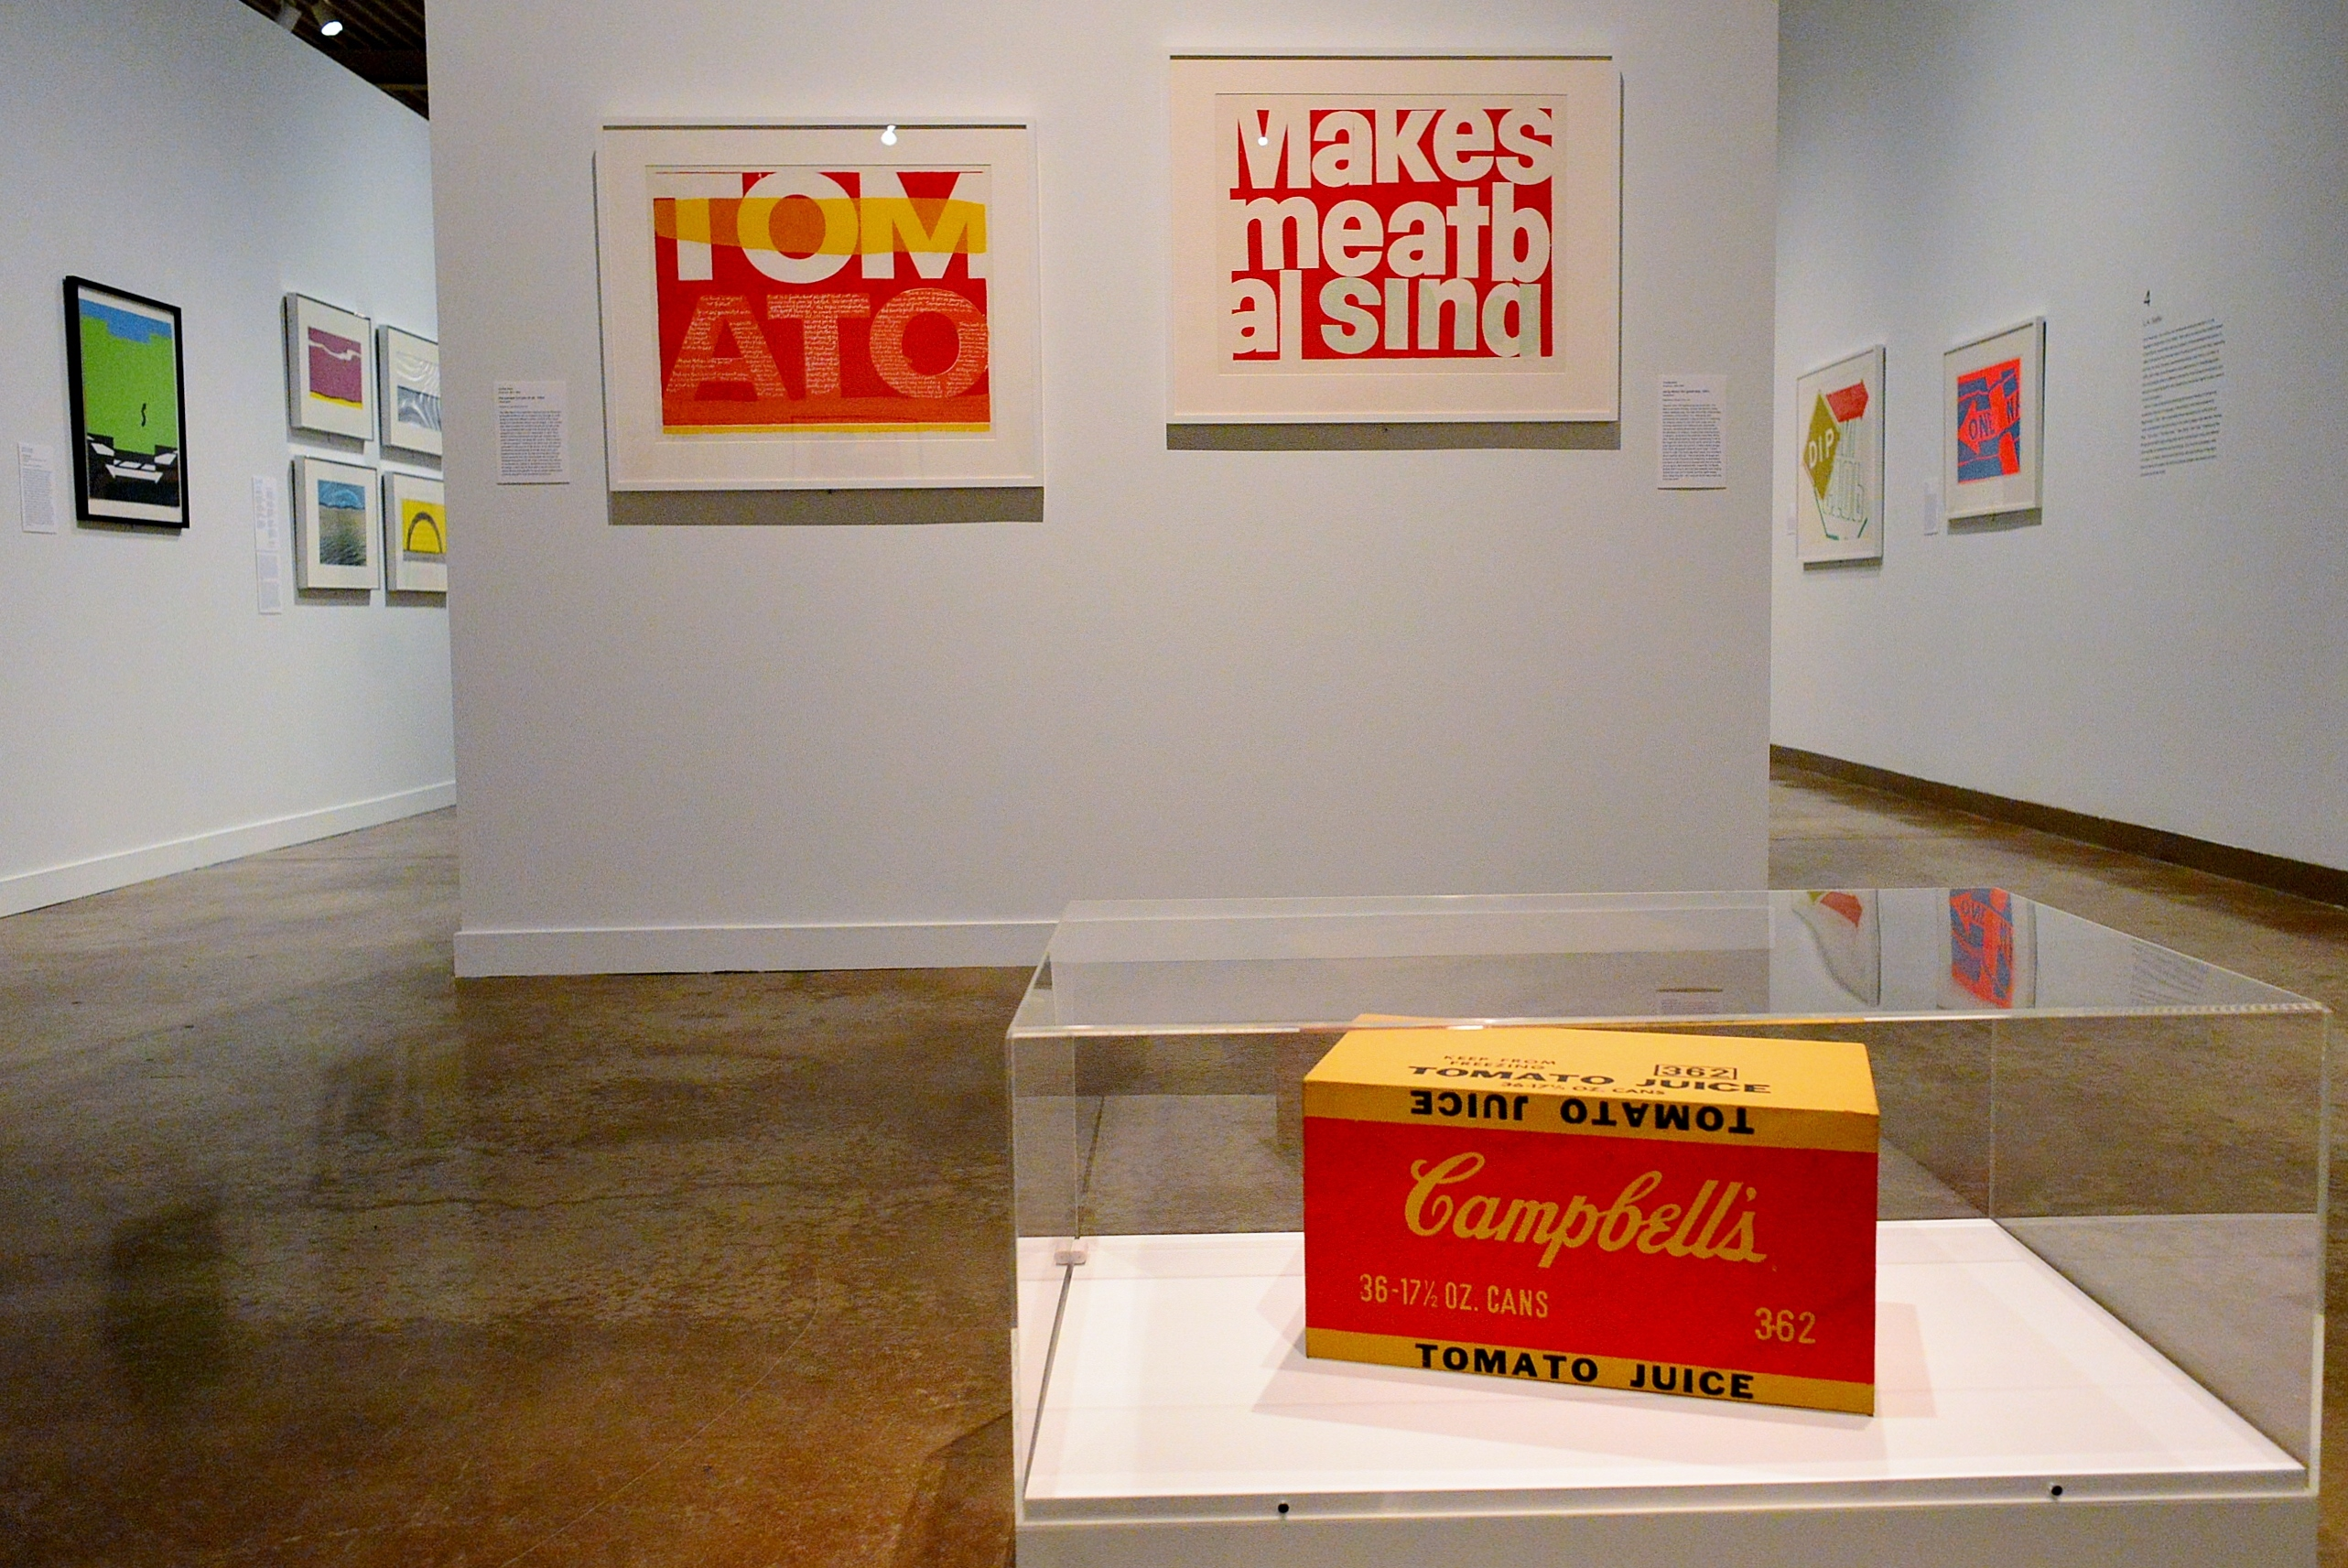 the juiciest tomato of all and song about the greatness (l-r) by Corita Kent. Andy Warhol's Campbell's Tomato Juice 